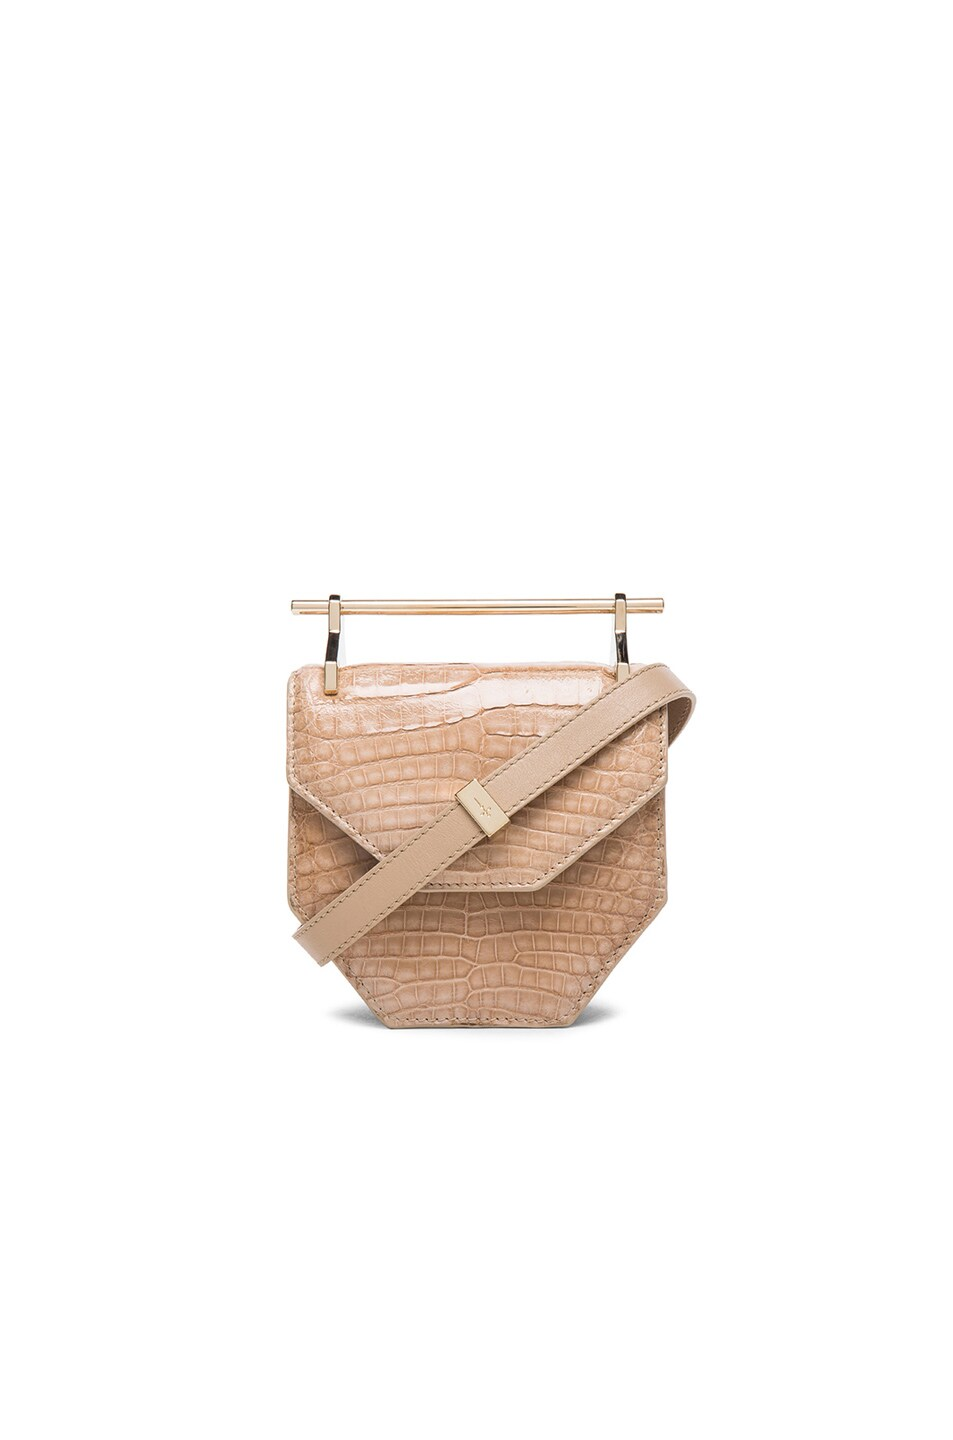 Image 1 of M2Malletier Mini Amor Fati in Croc Sand